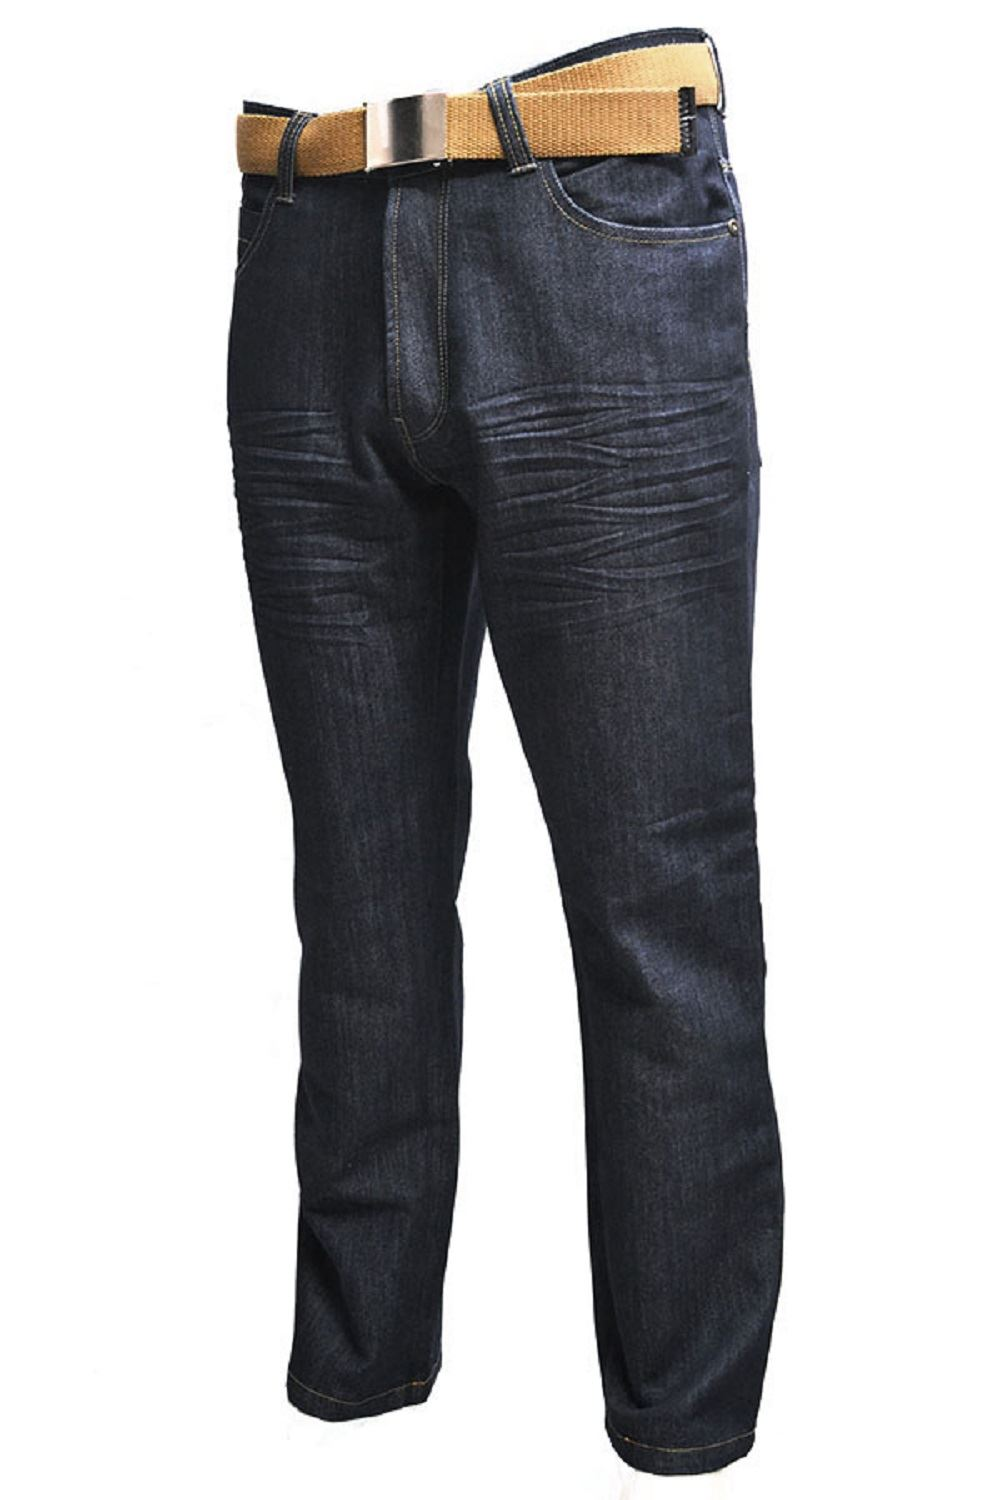 Mens-Classic-Fit-Black-Indigo-Jeans-Kori-By-Creon-Previs thumbnail 17